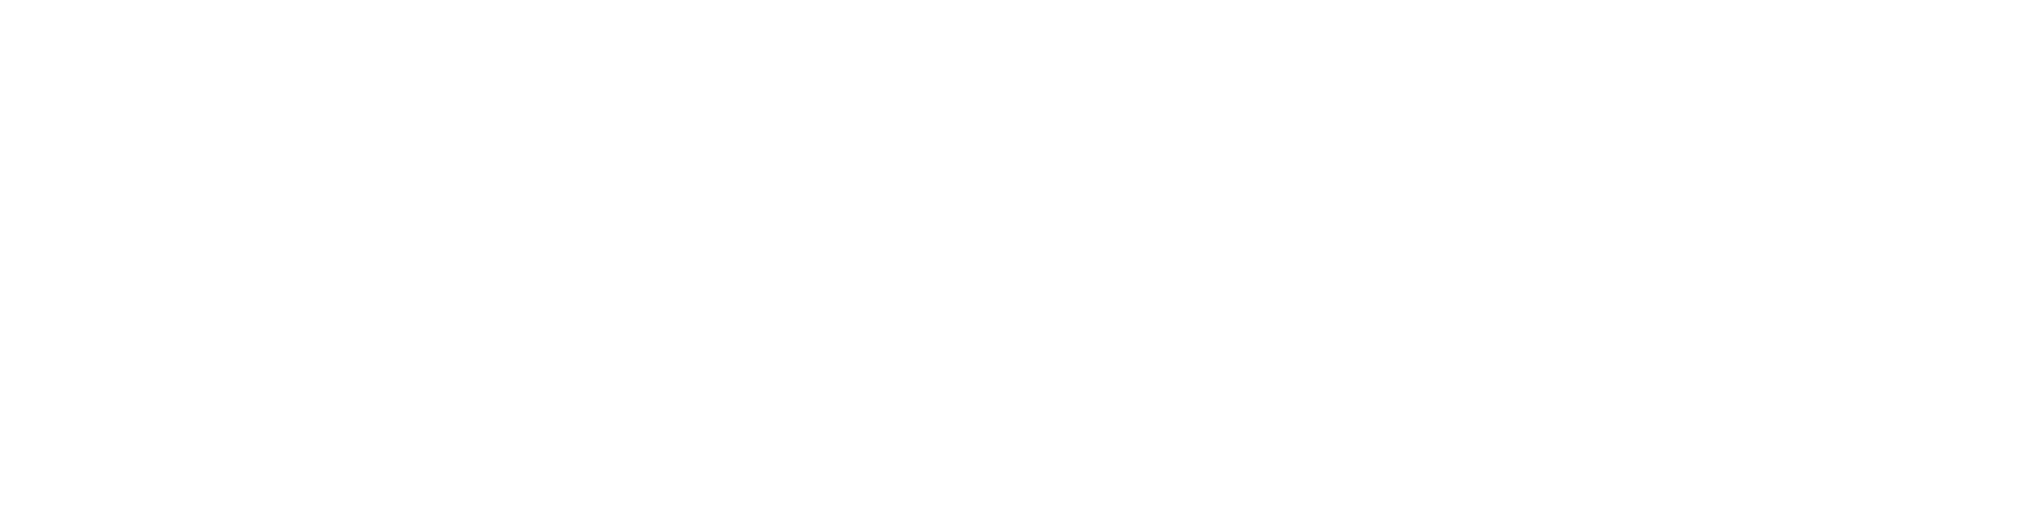 //proprius.com/wp-content/uploads/2020/01/Proprius-Logo-with-Tag-Line-White.png